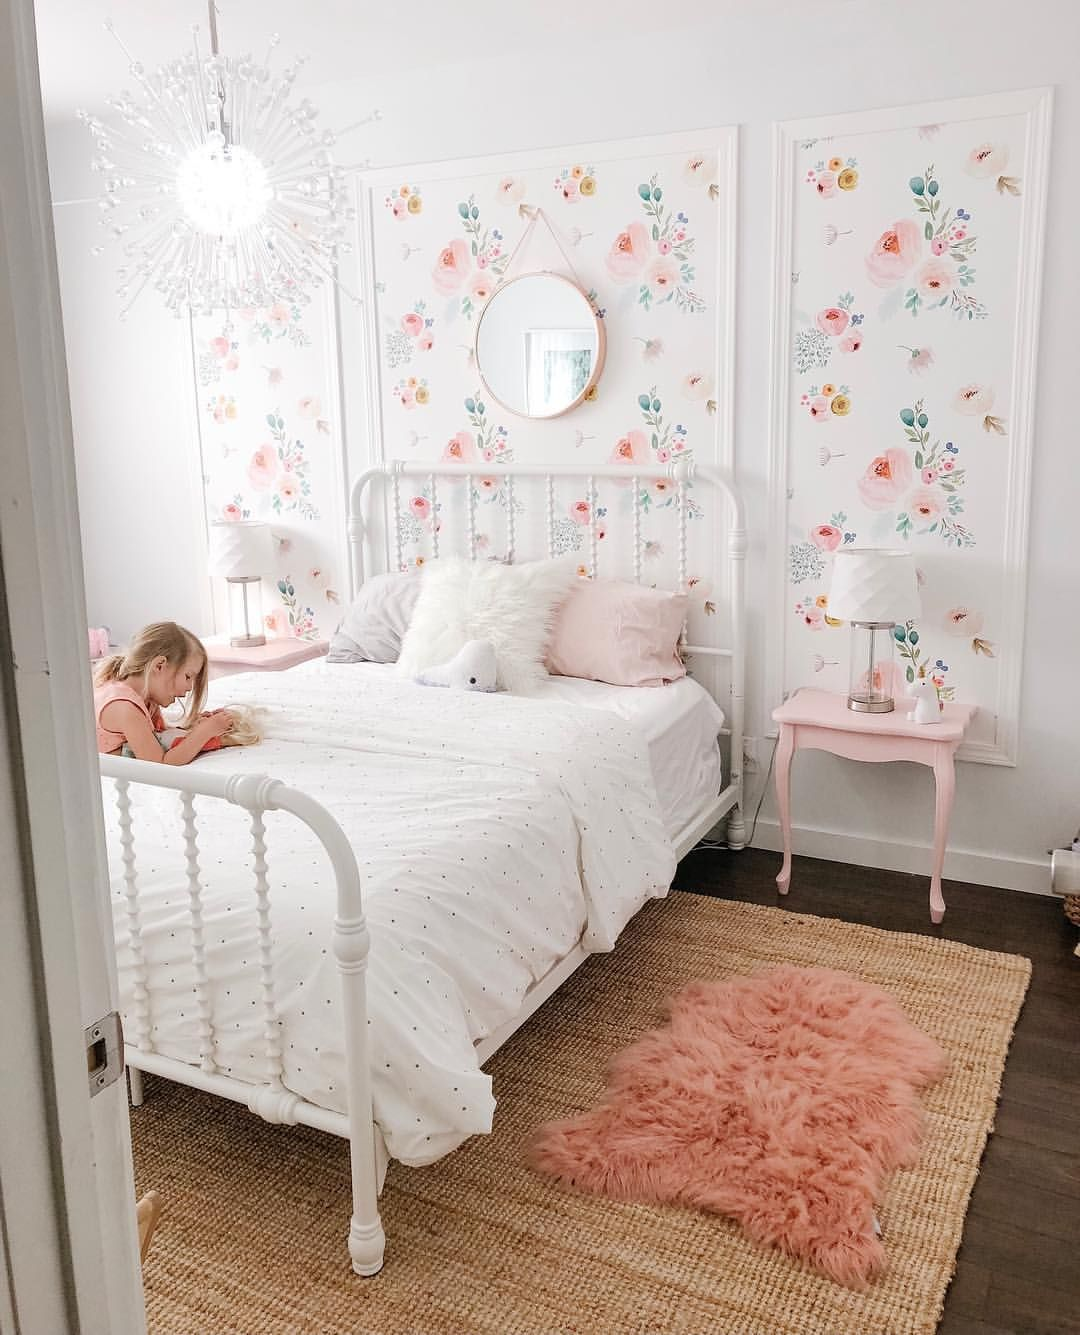 My Favourite Room In The House I Remember As A Kids Always Having A Nice Room Or What I Thought Was Nice A Big Girl Bedrooms Toddler Bedroom Girl Cool Rooms